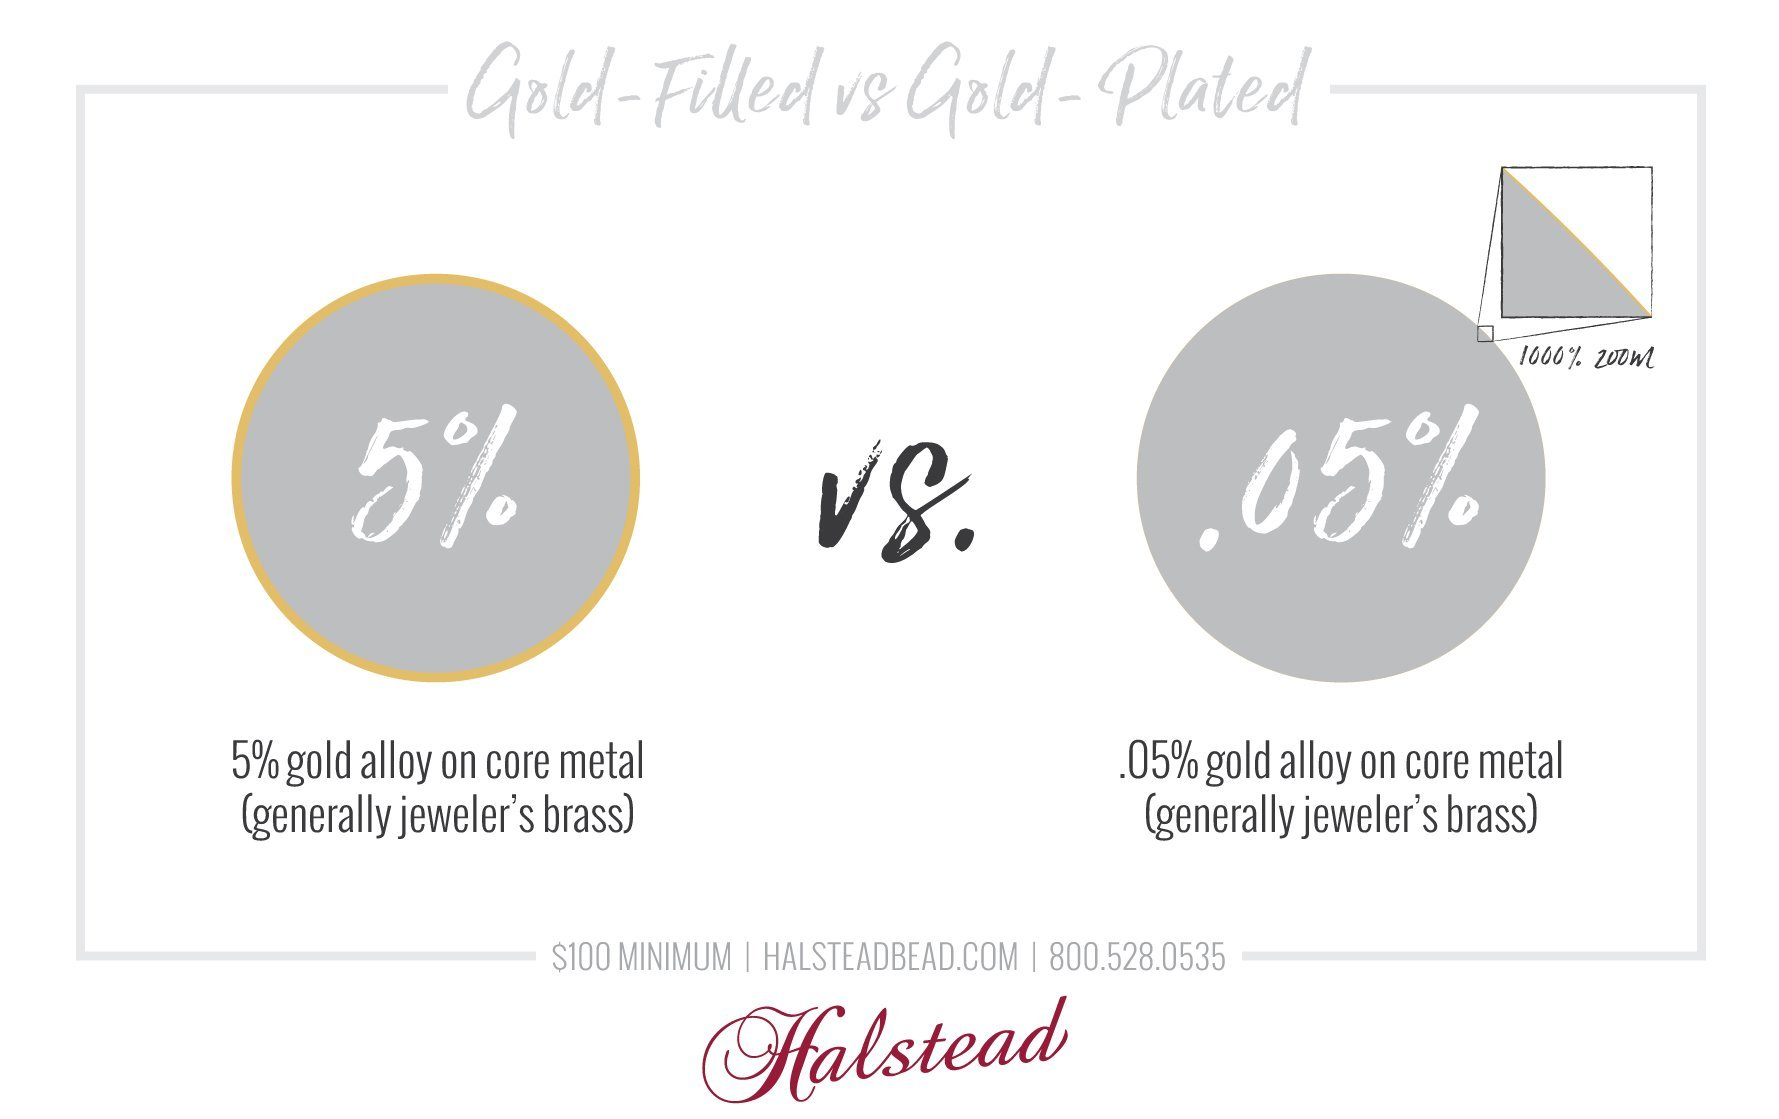 Gold-filled vs. gold-plated comparison chart